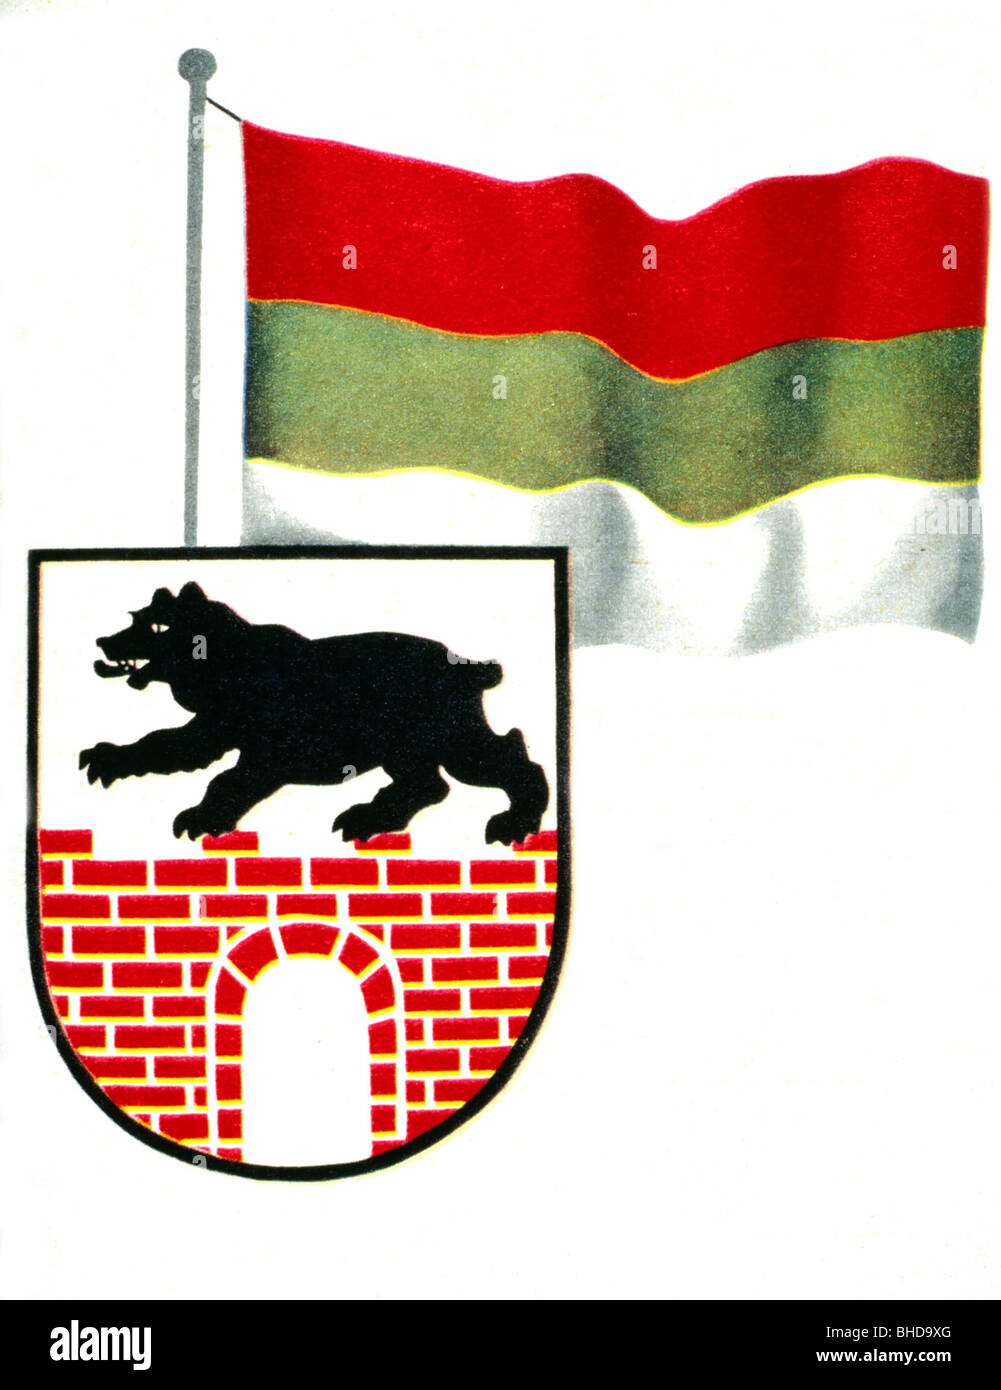 heraldry, coat of arms, Germany, flag and coat of arms of the state of Anhalt (since the Middle Ages), former GDR, - Stock Image